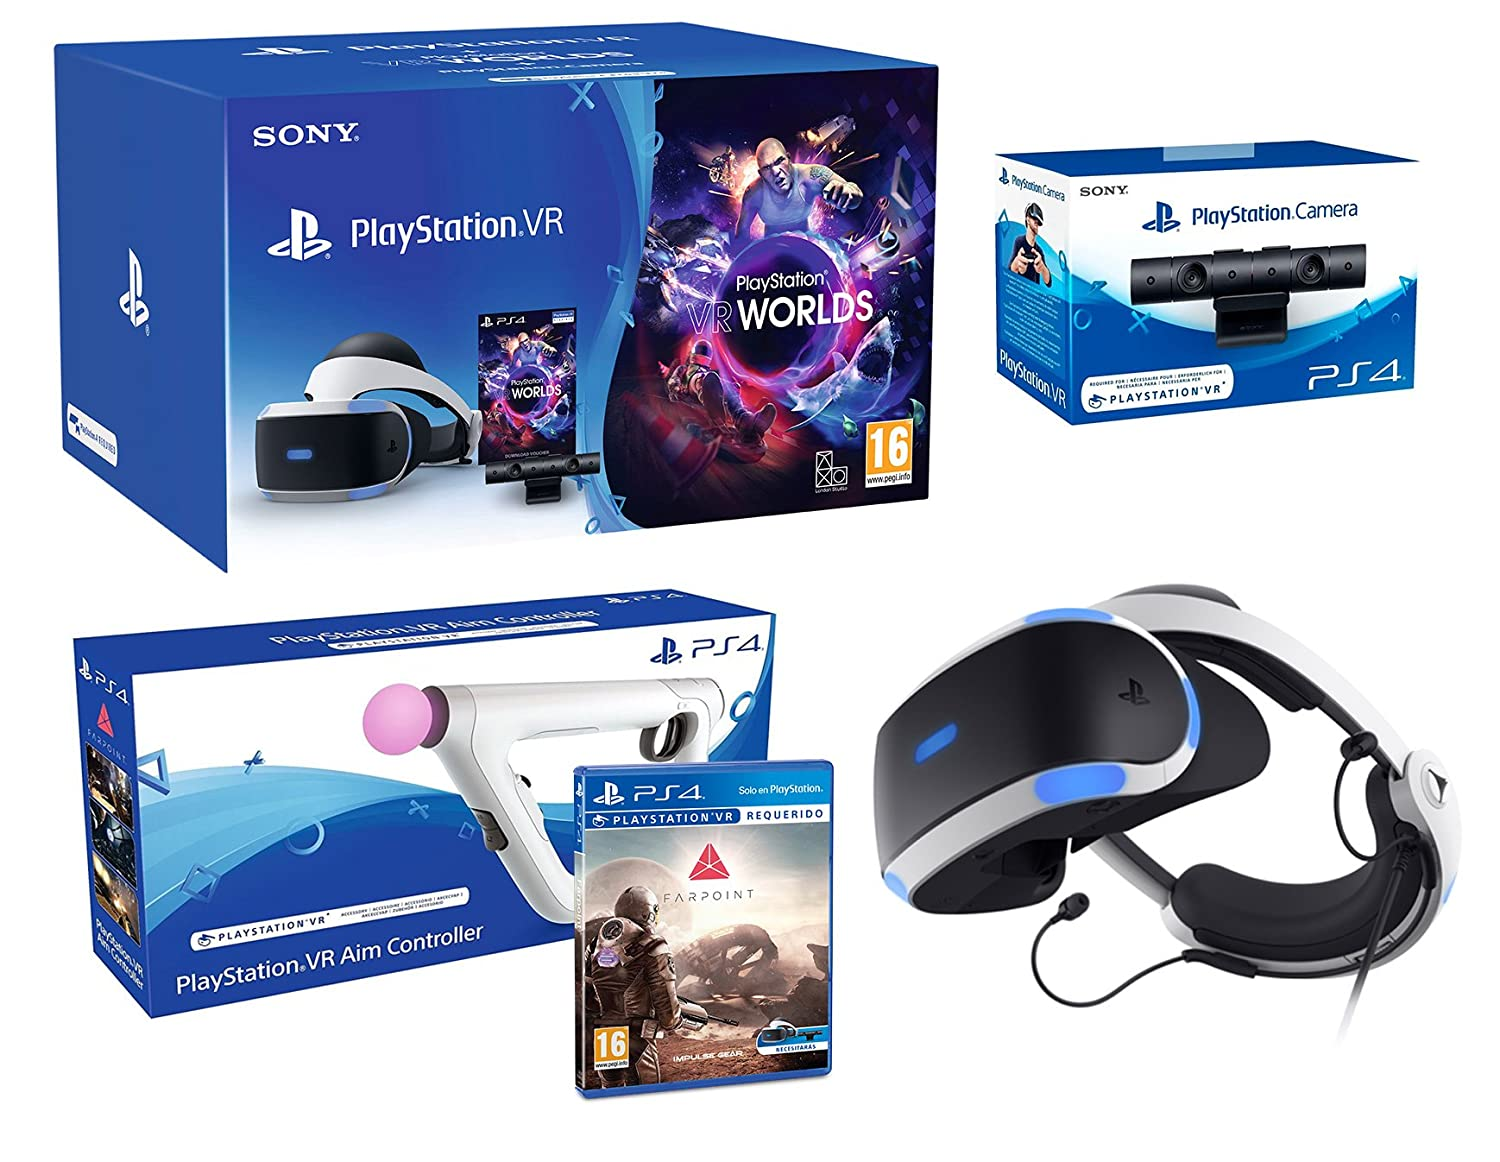 Farpoint Sony Playstation Vr Aim Controller Box Only Last Style Original Game Cases & Boxes